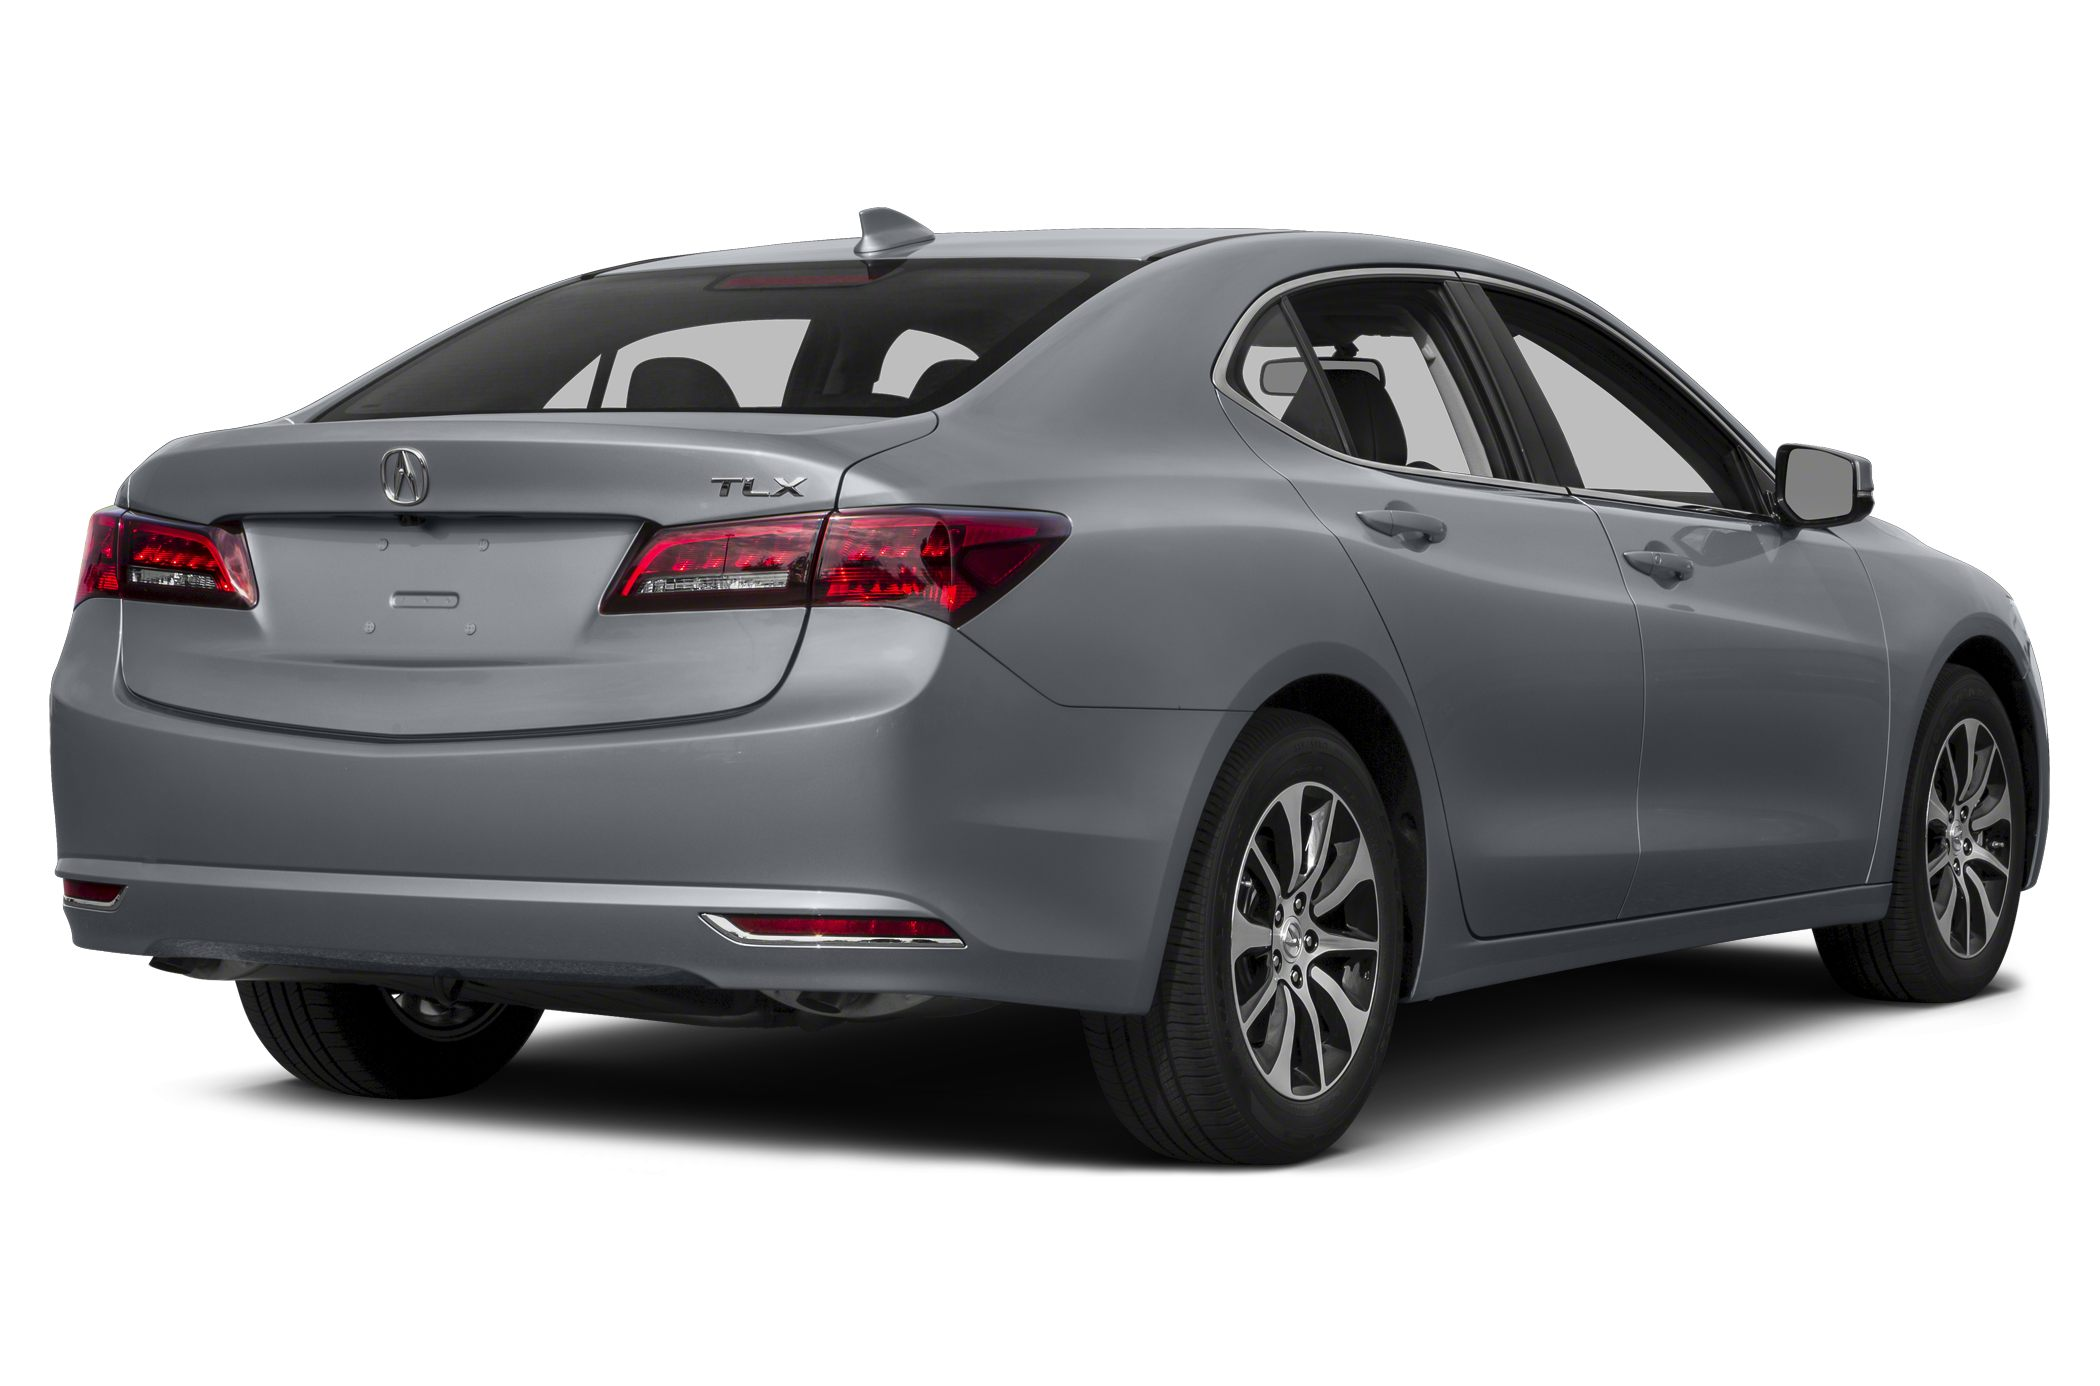 2015 Acura TLX Base Vehicle Options ABS Brakes Front Heated Seat Second Row Folding Seat Air condi